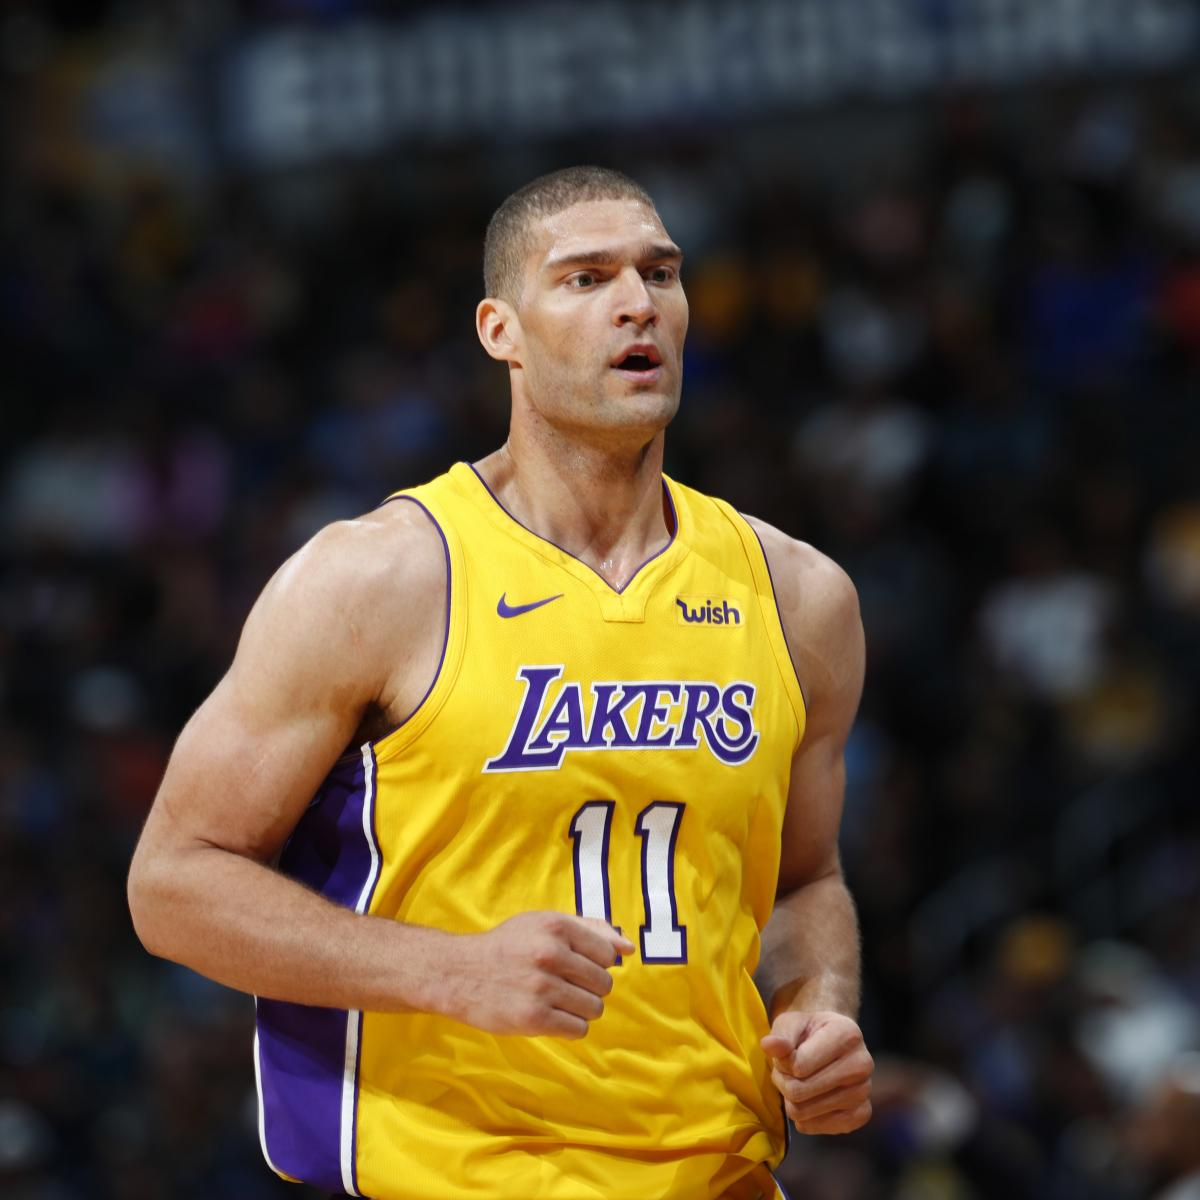 Report: Brook Lopez Agrees to Bucks' 1-Year Contract After 1 Season with Lakers